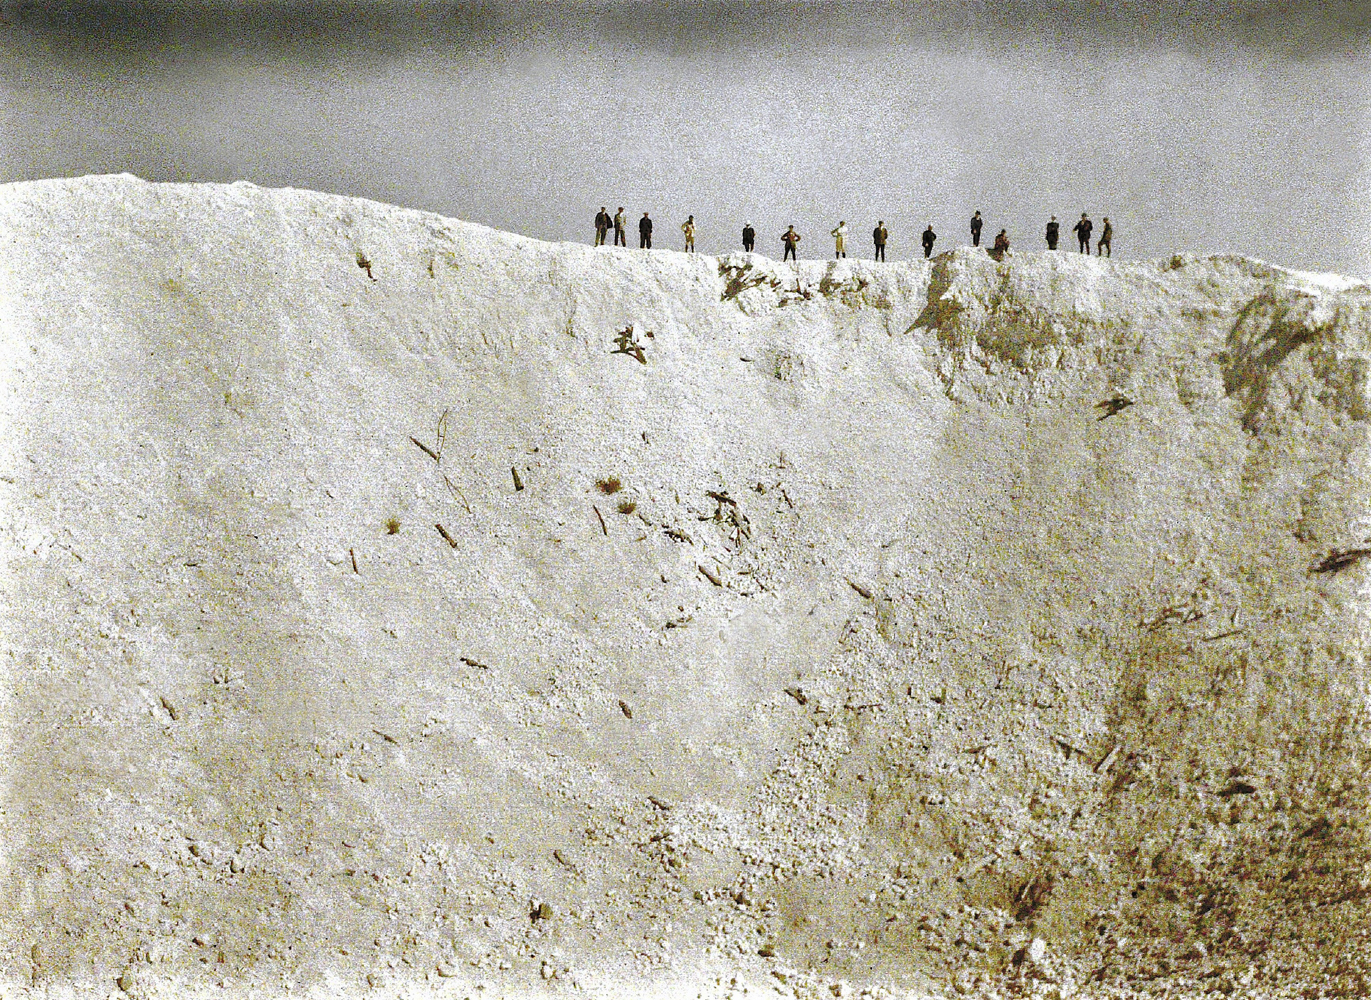 A crater caused by the explosion of 19 mines placed underneath German positions near Messines in West Flanders by the British on June 7, 1917. A total of about 10,000 soldiers died, amongst them almost all of the 3rd Royal Bavarian Division. The blast was one of the biggest non-nuclear explosions of all times and was audible in Dublin and London.